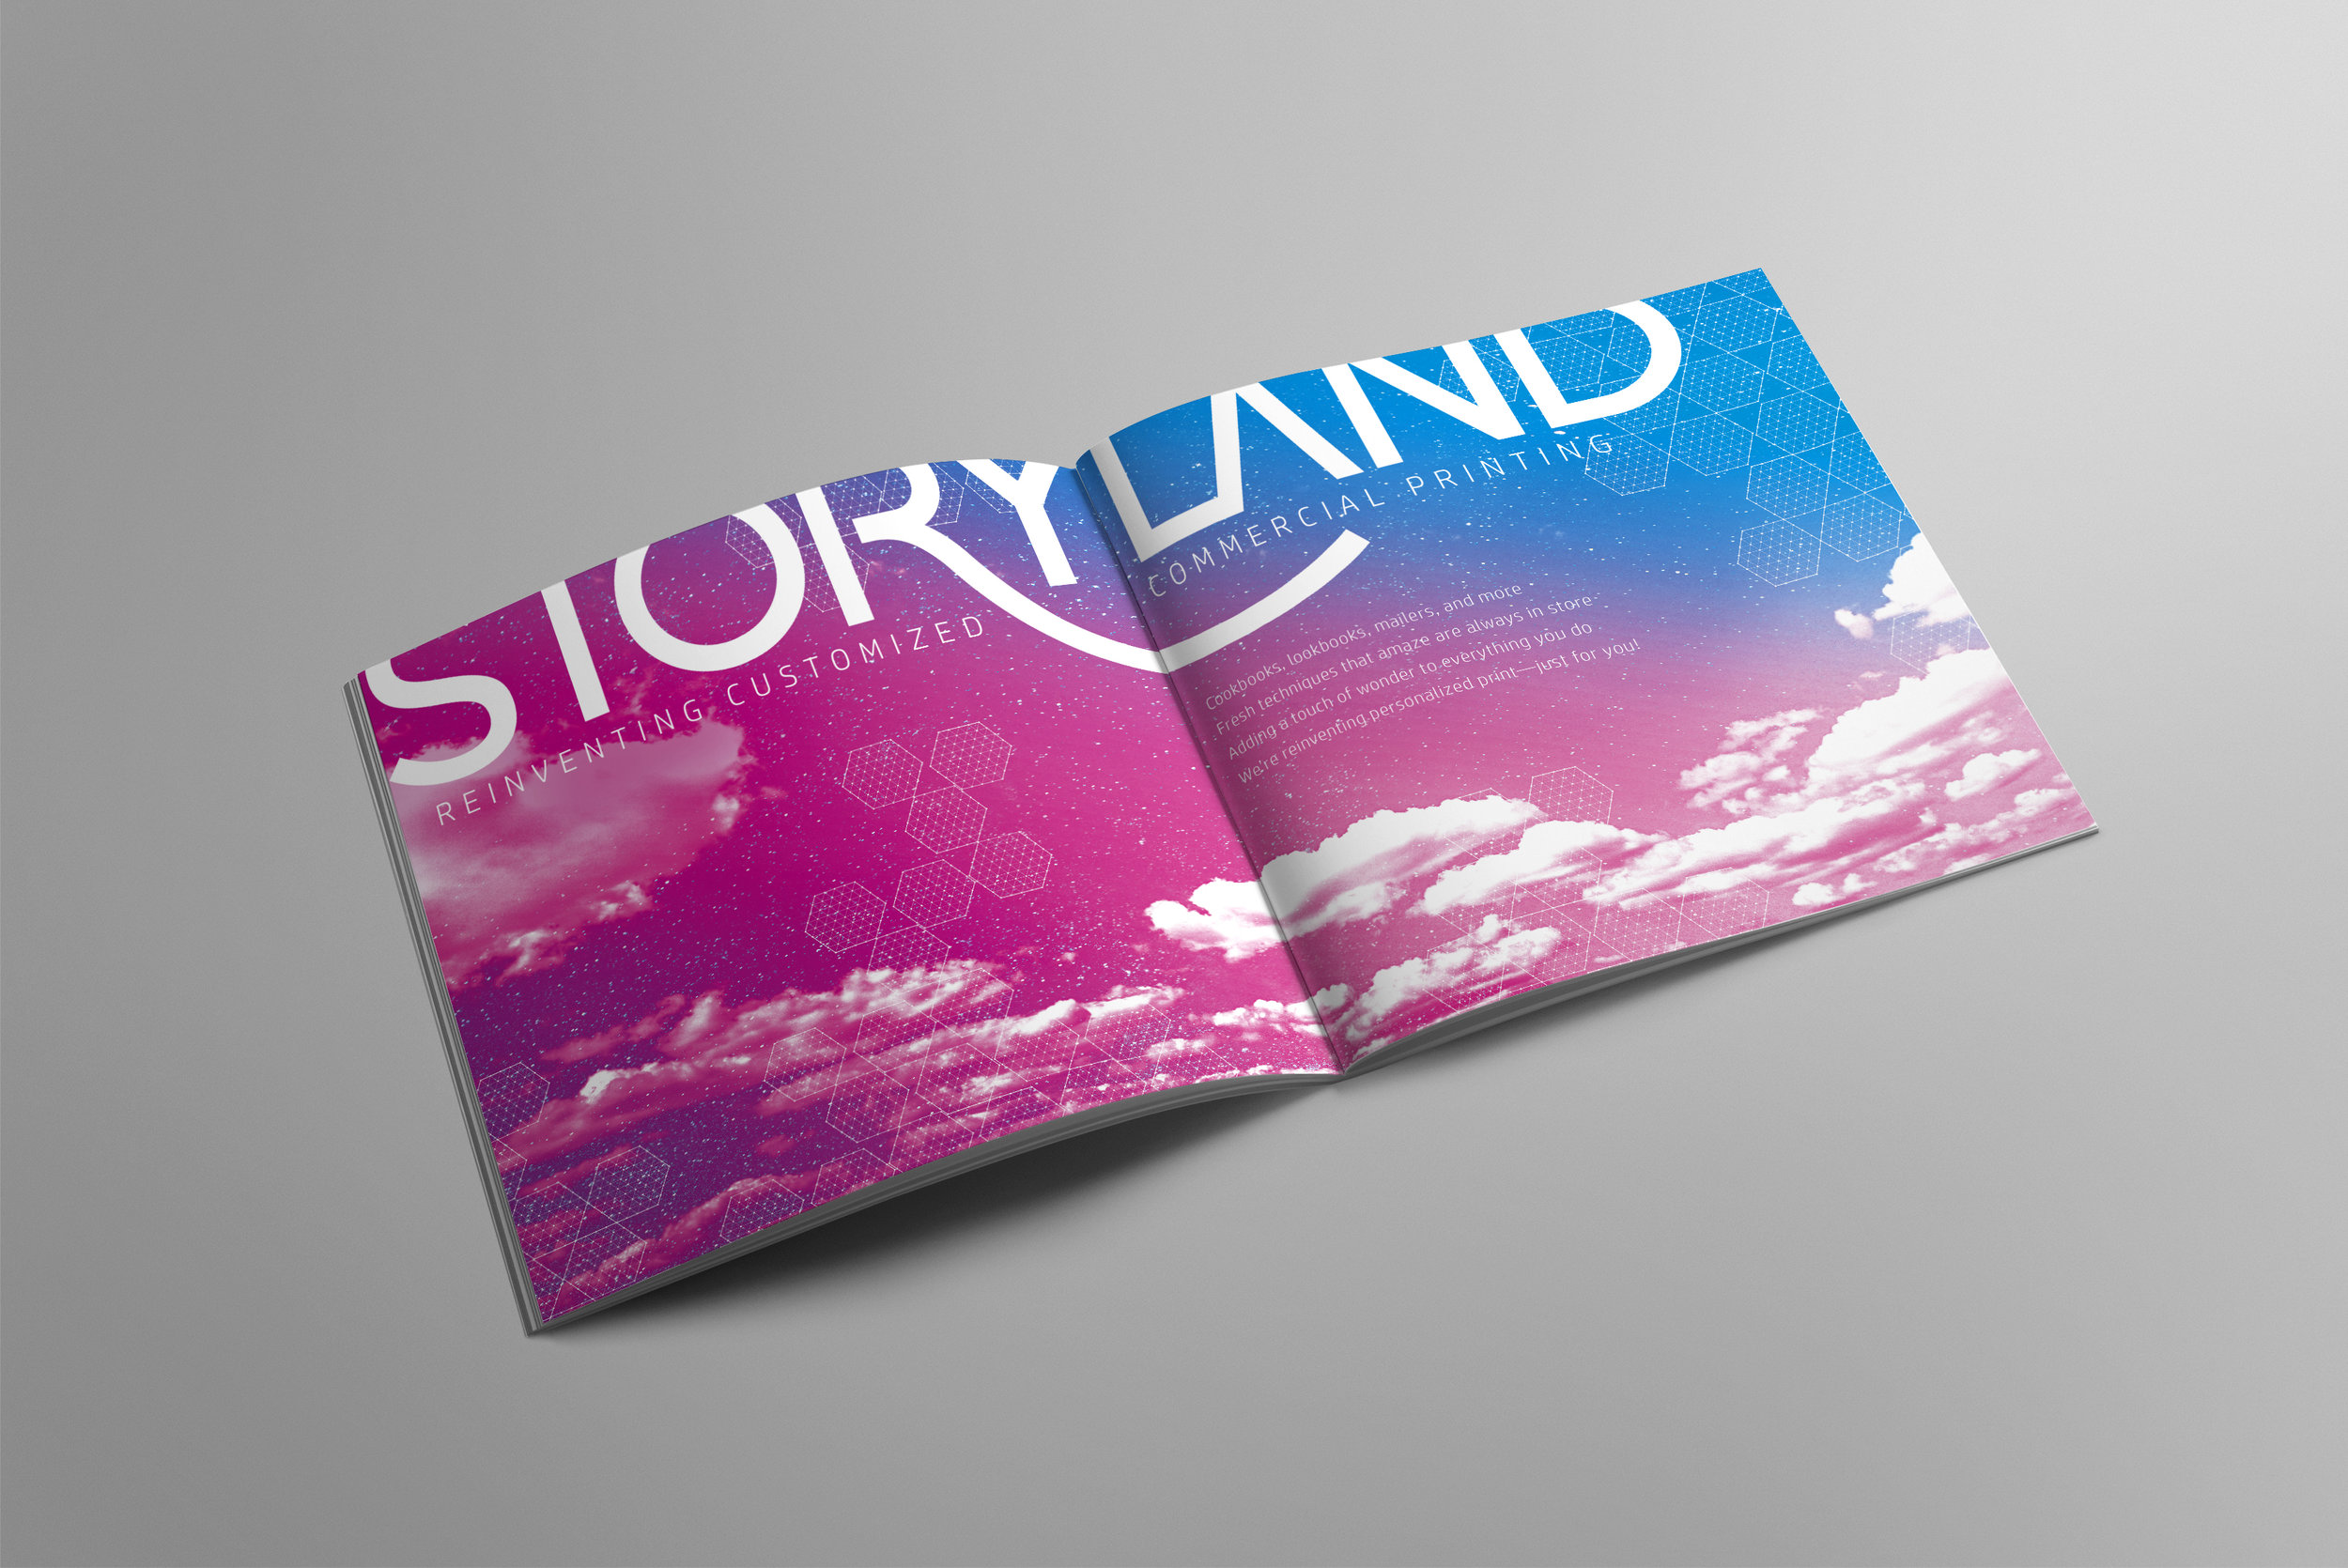 GSB211773_Booklet_Storyland_Splash.jpg